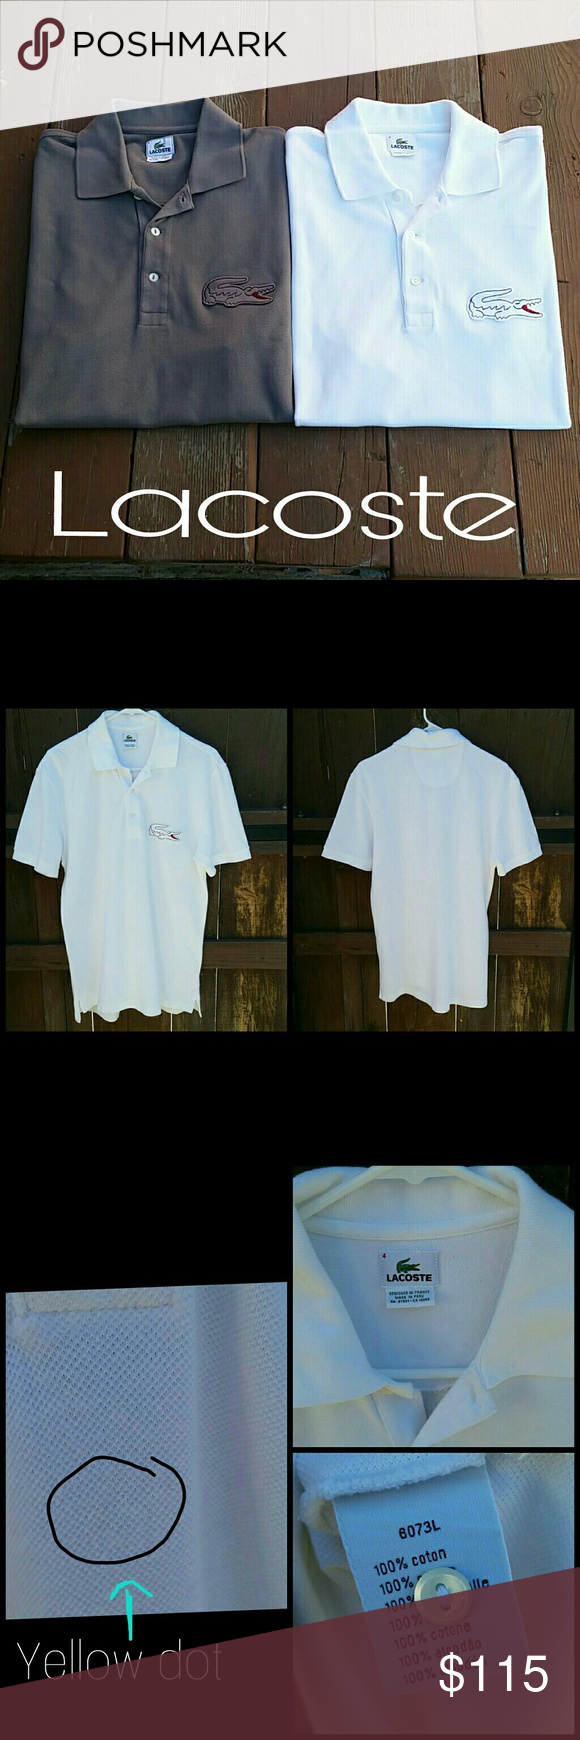 80077c1586a Lacoste Polos Bundle on two Polos with oversized croc each shirt retails  for  150. White